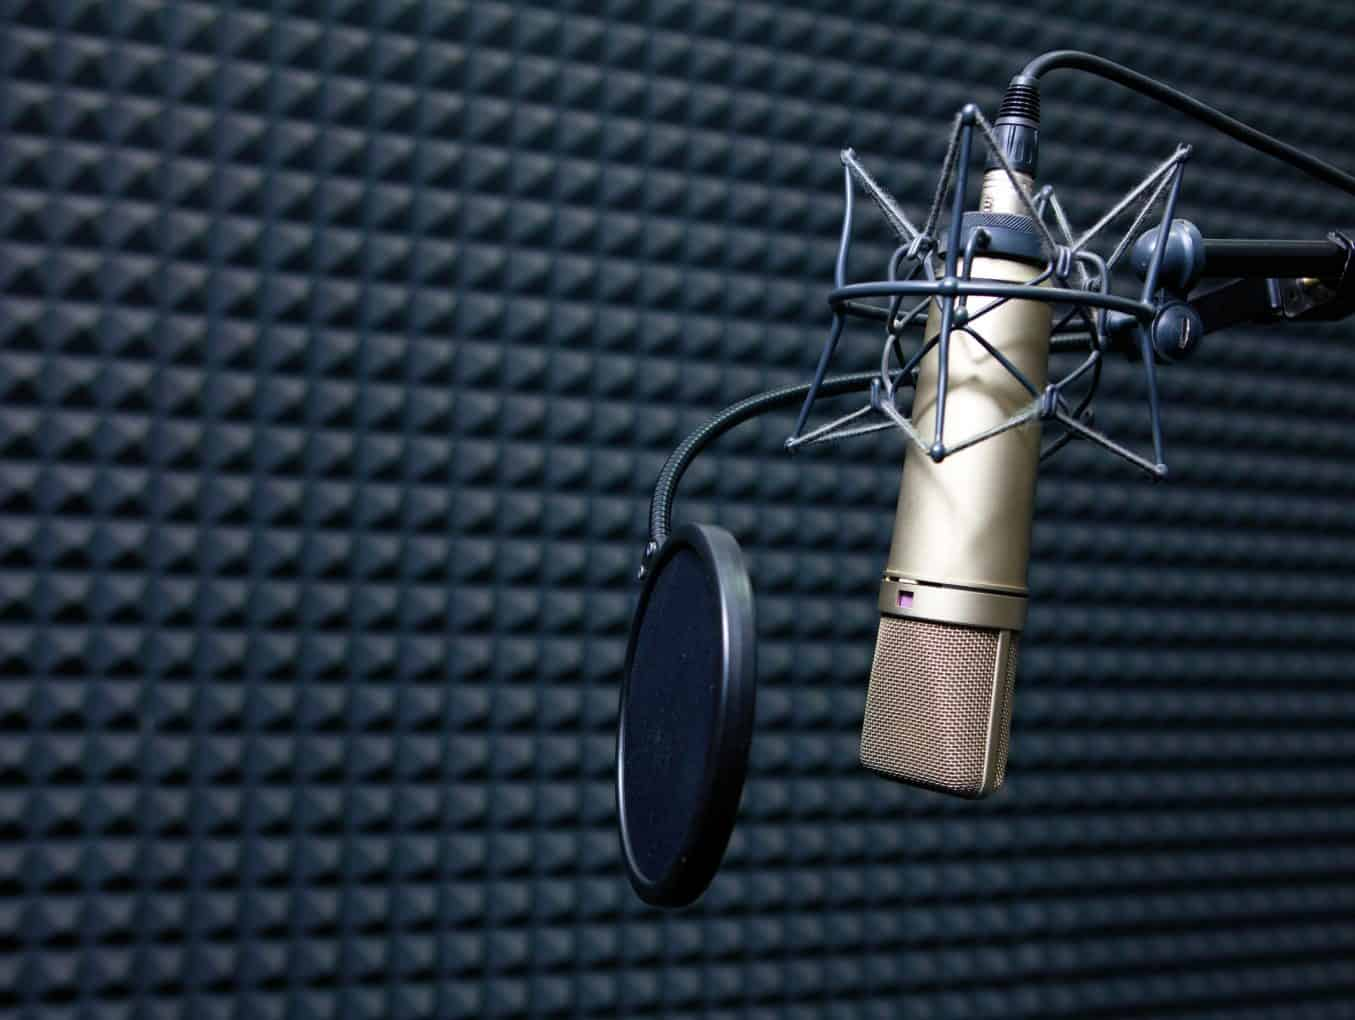 How To Get A Voice Over Job, According To An Ad Agency Copywriter